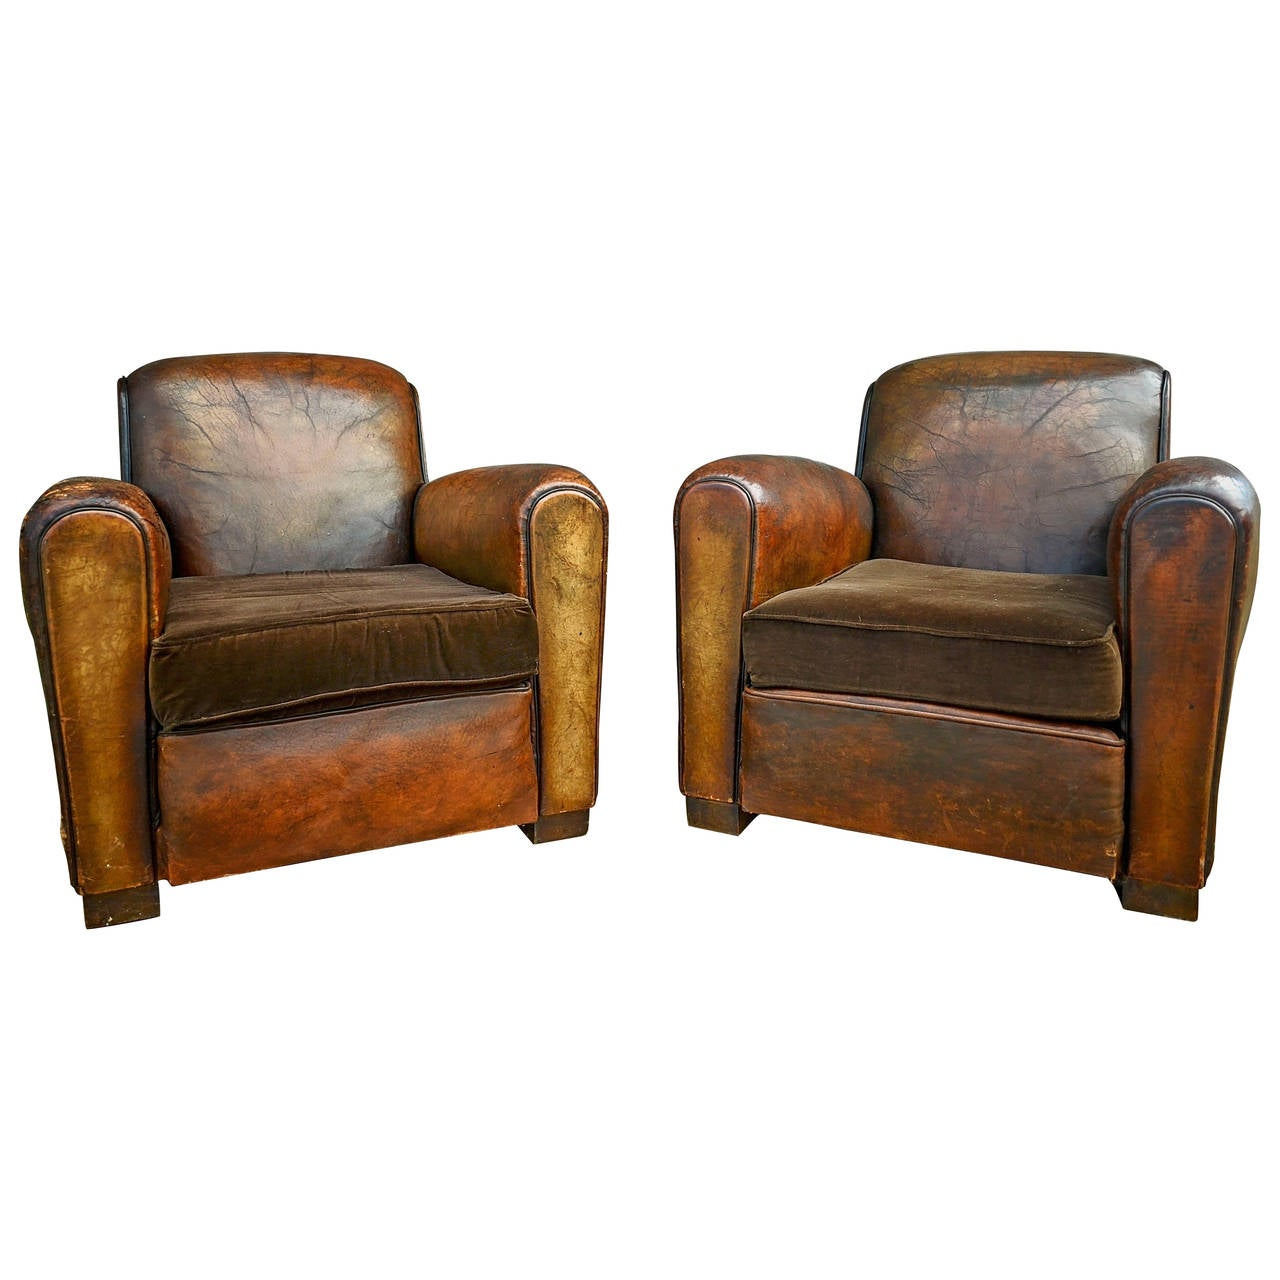 Attrayant Pair Of French Leather Club Chairs With Velvet Cushions For Sale